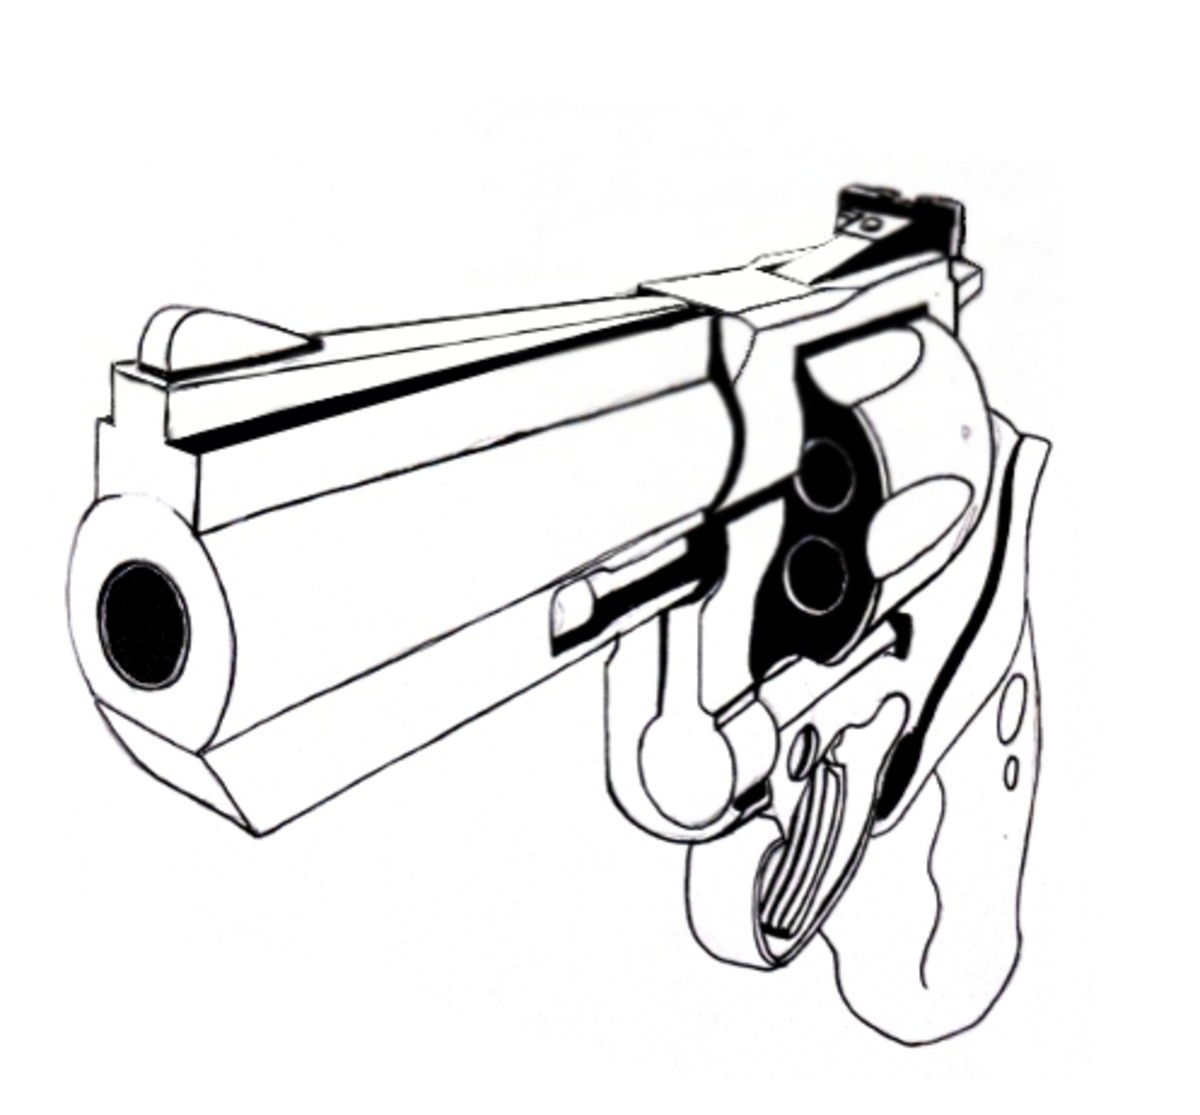 One Line Art Gun : How to draw a gun drawing on video hubpages